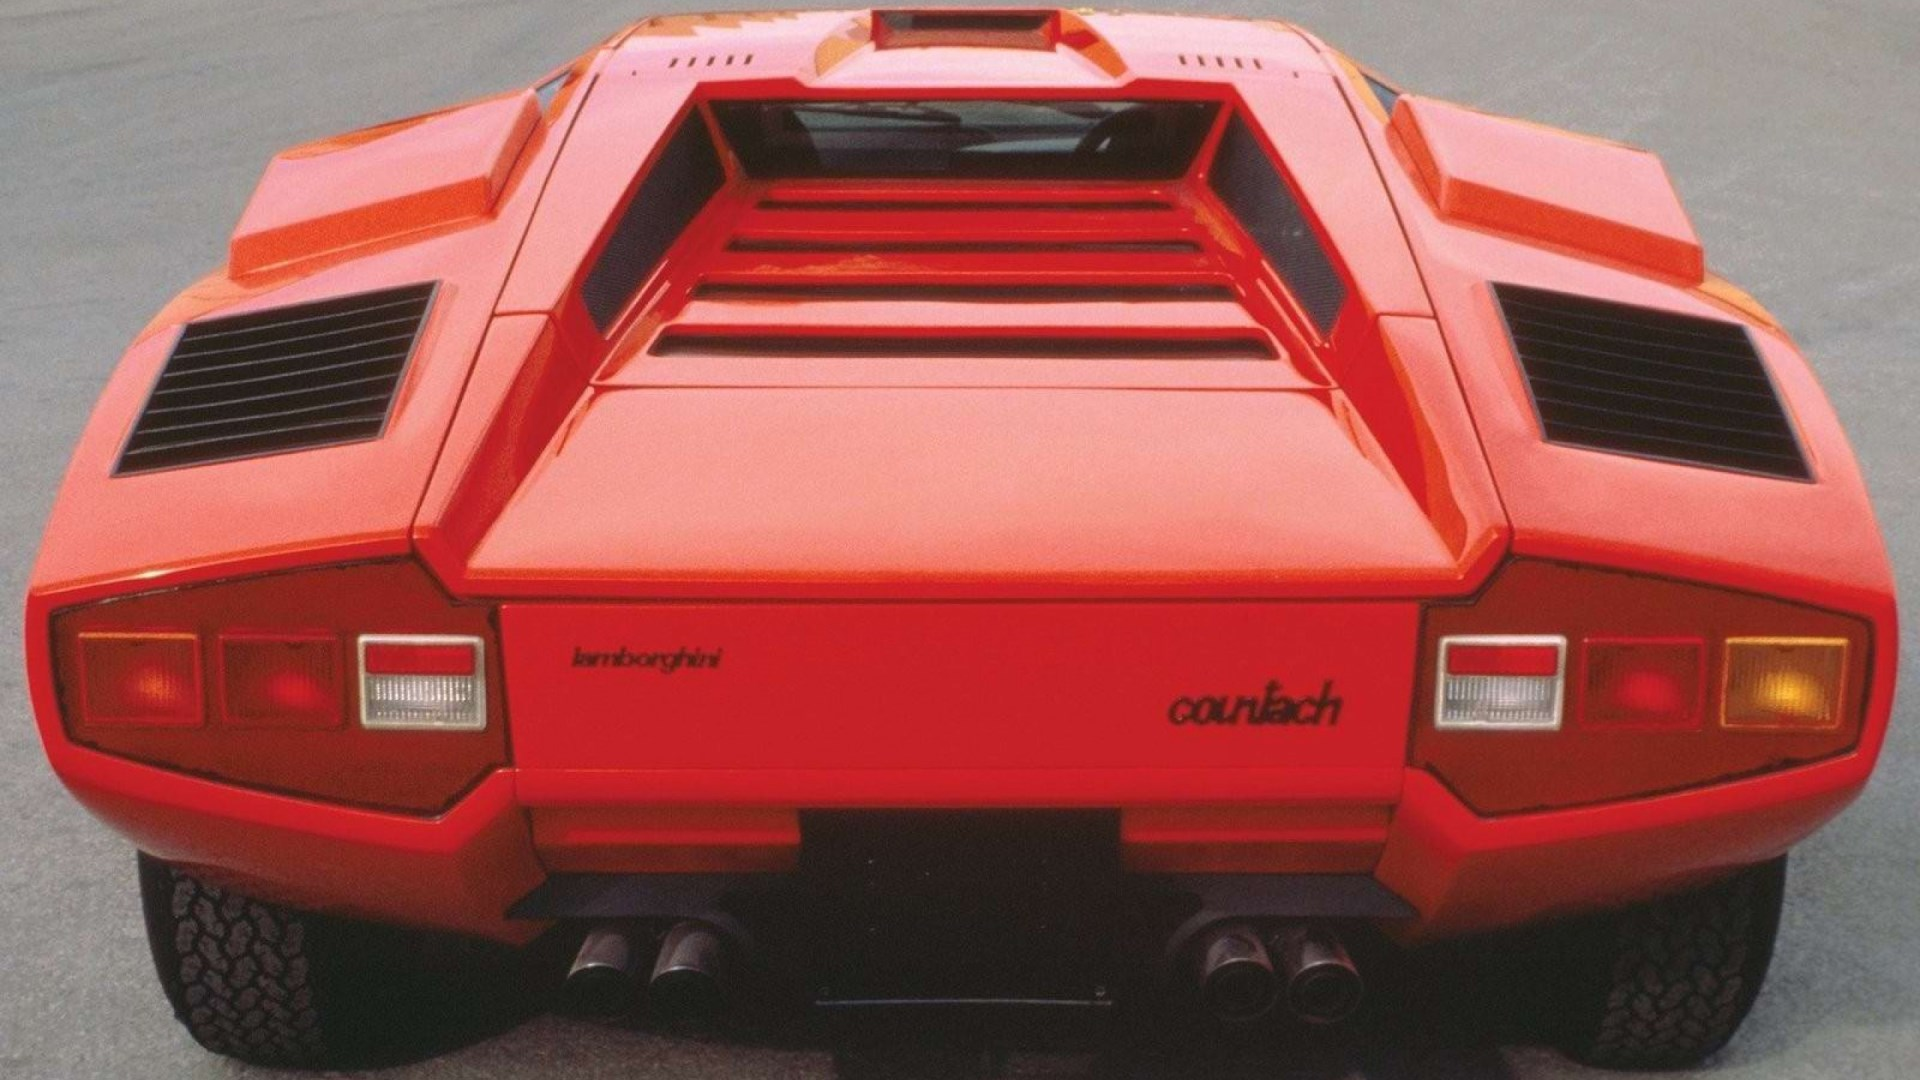 1920x1080px-lamborghini-countach-pictures-free-by-Franklin-Gordon-wallpaper-wp3401020